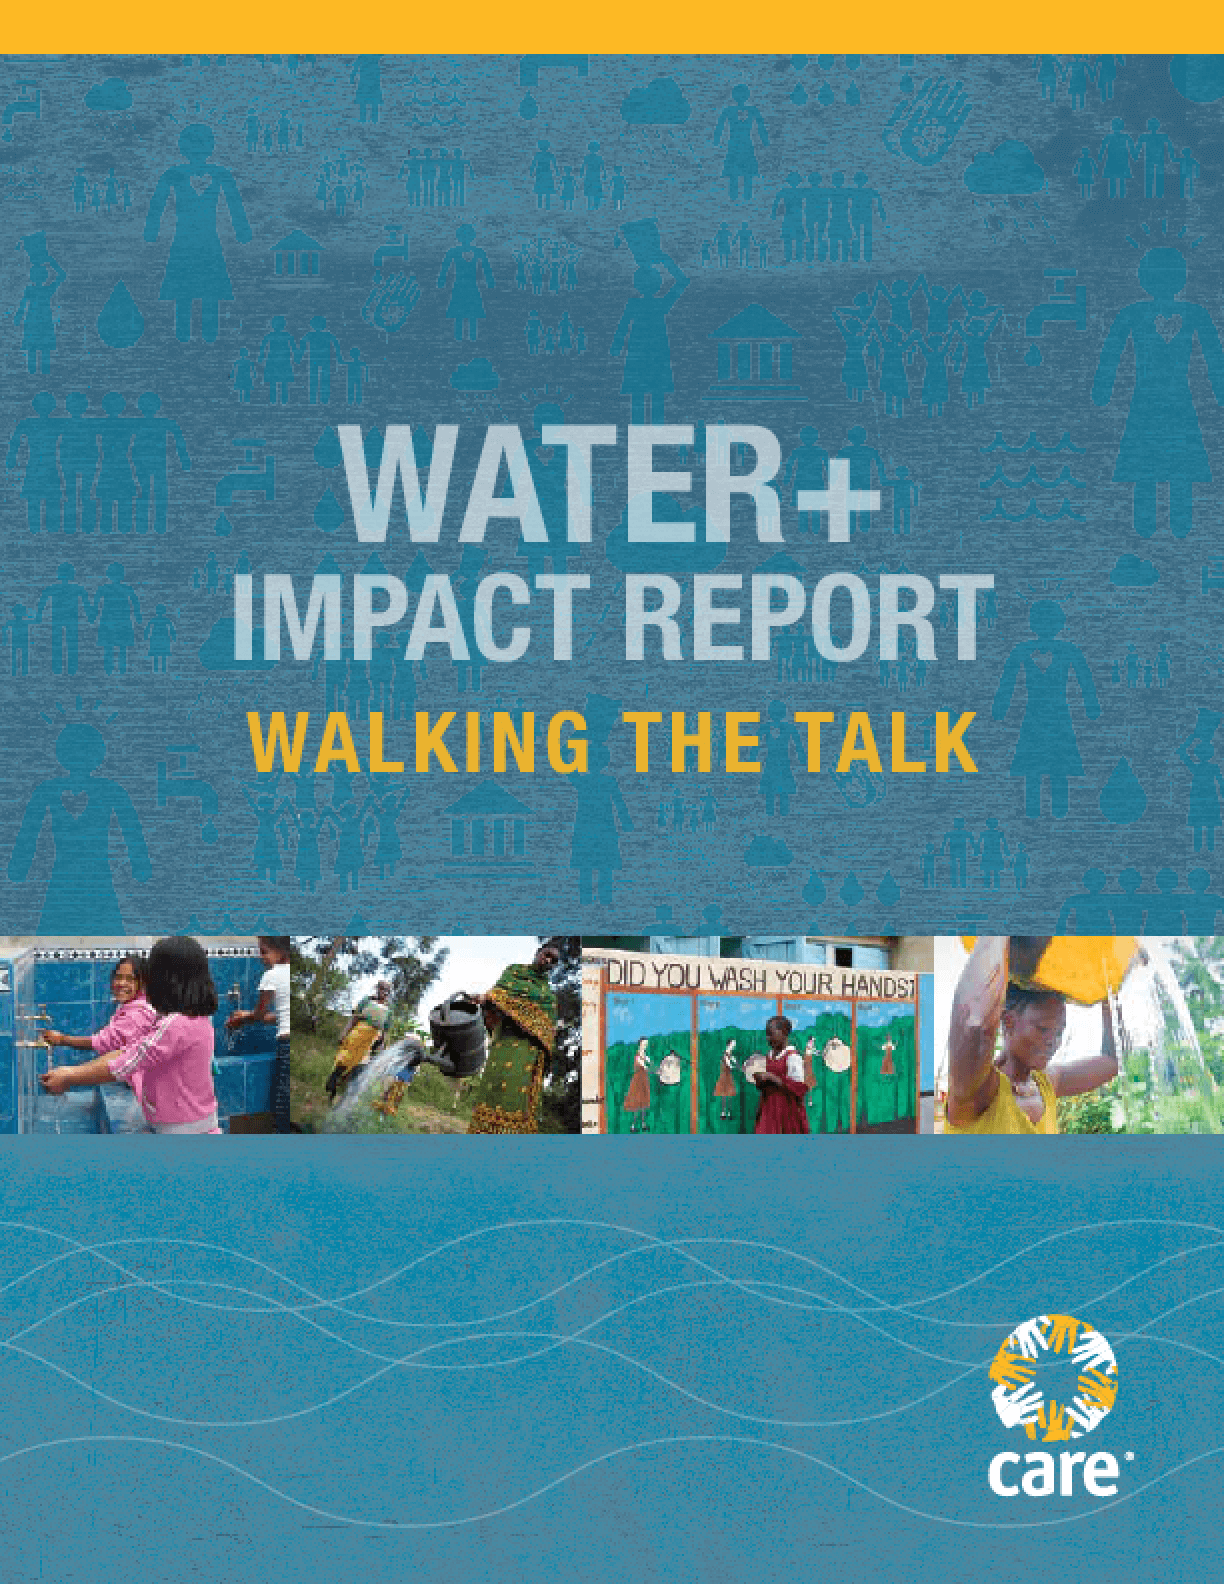 Water+ Impact Report: Walking the Talk